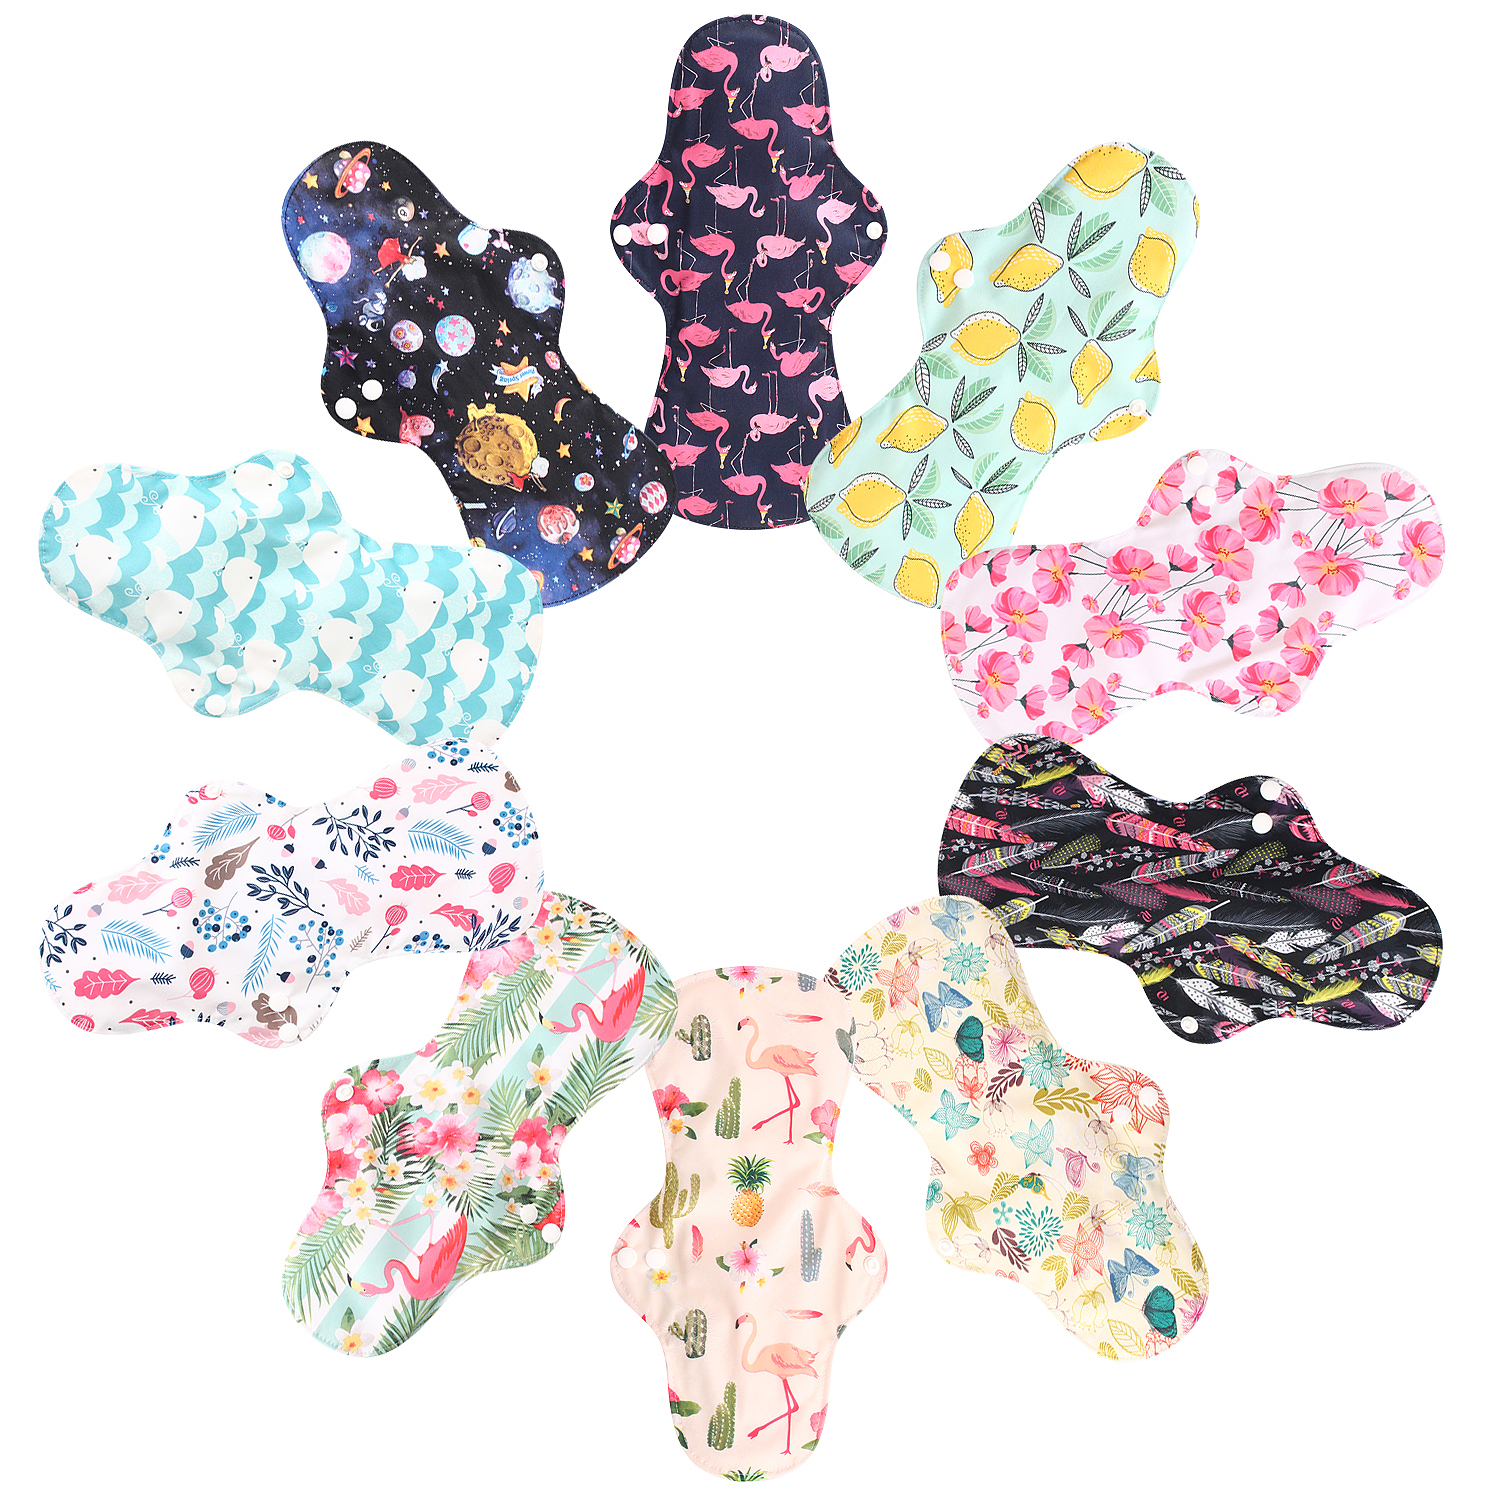 Heavy Night Use Reusable Cloth Menstrual Pad Sanitary Napkin Washable Sanitary Pads Organic Bamboo Lining Waterproof PUL Outer